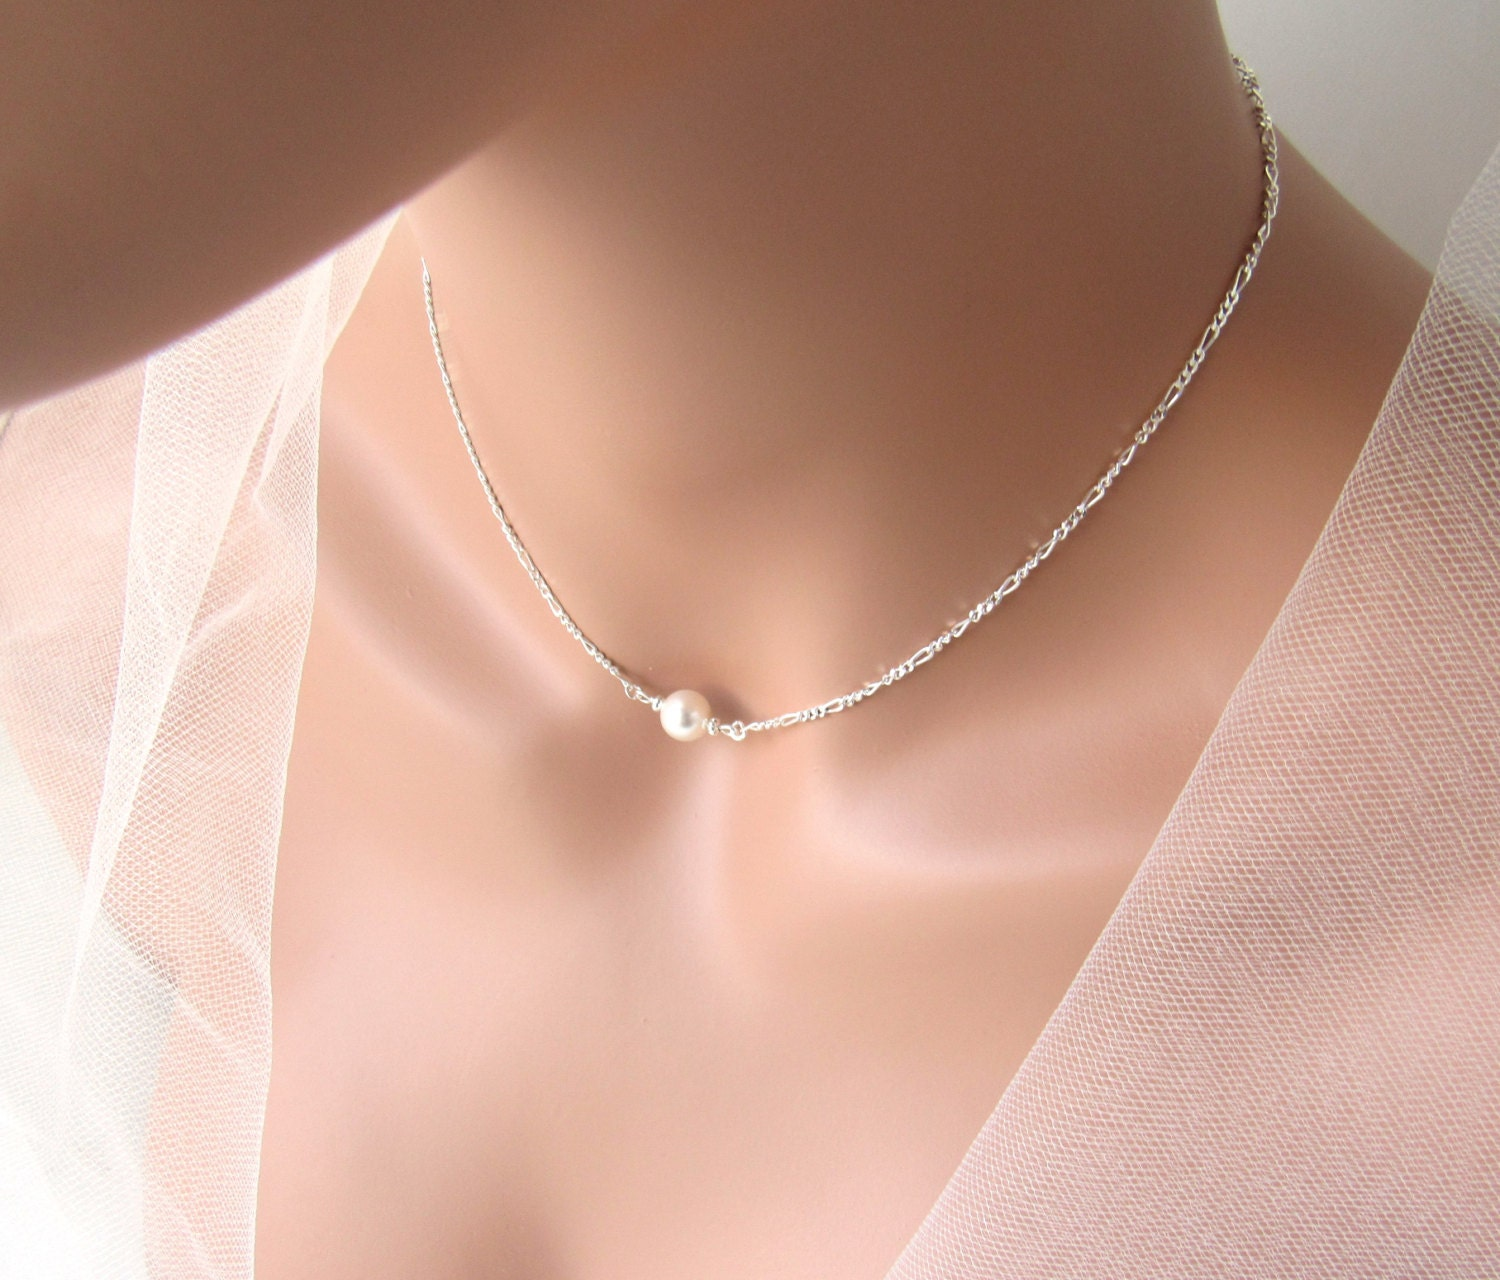 dainty necklace pearl mya jewelry index single product choker